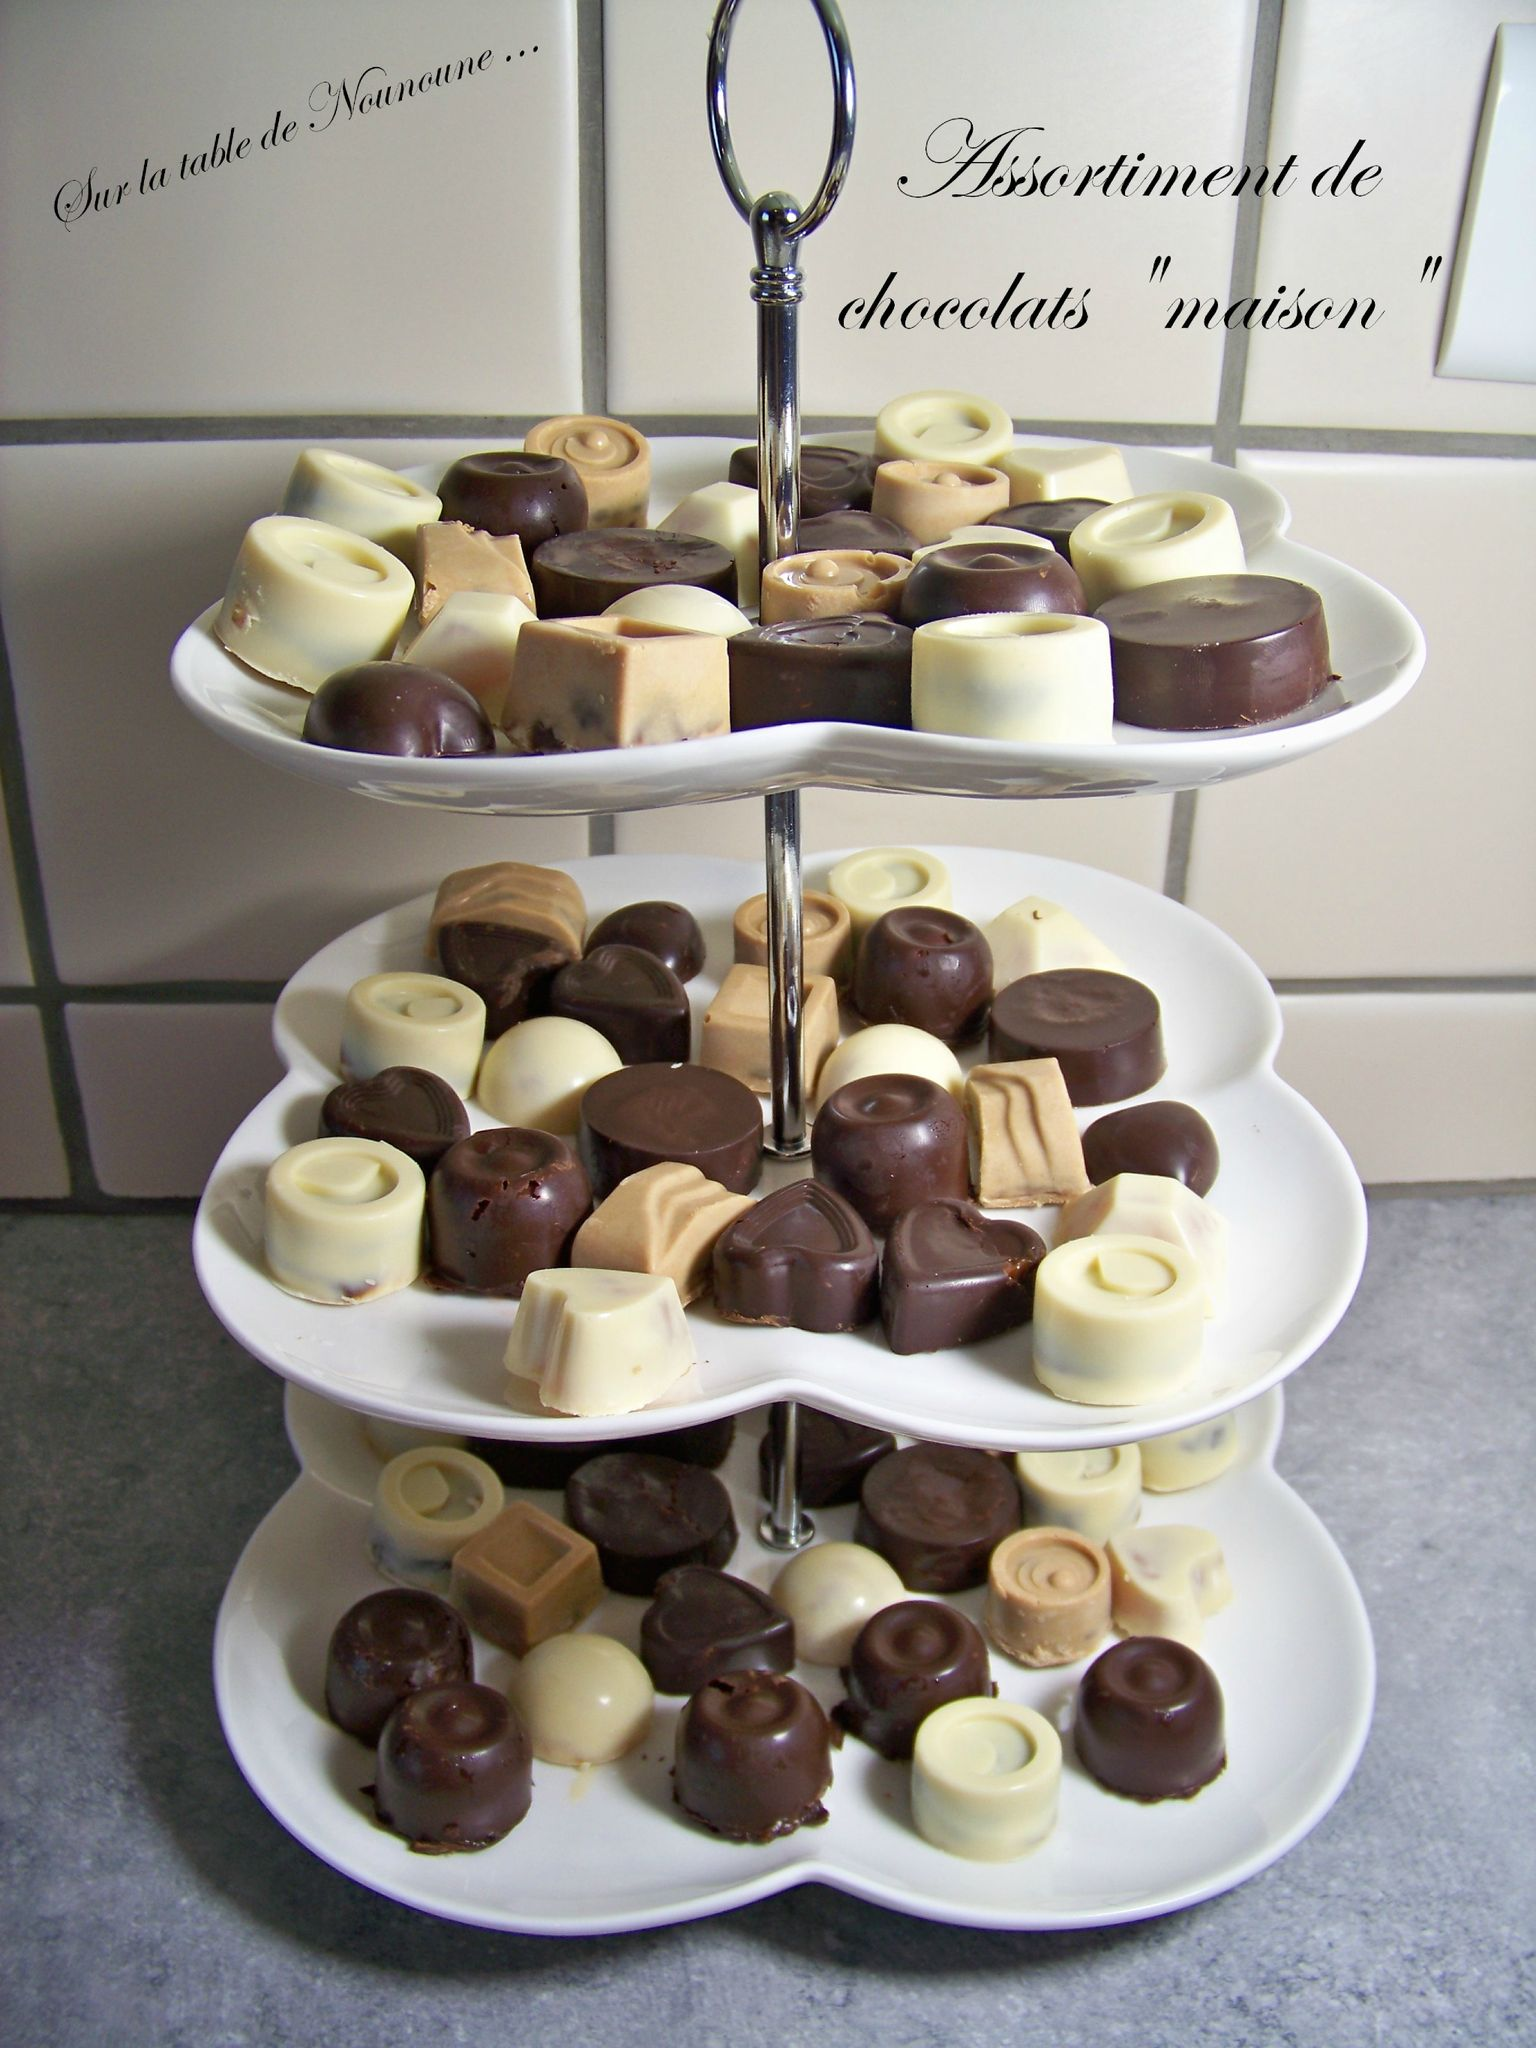 "Assortiment de chocolats ""maison"""